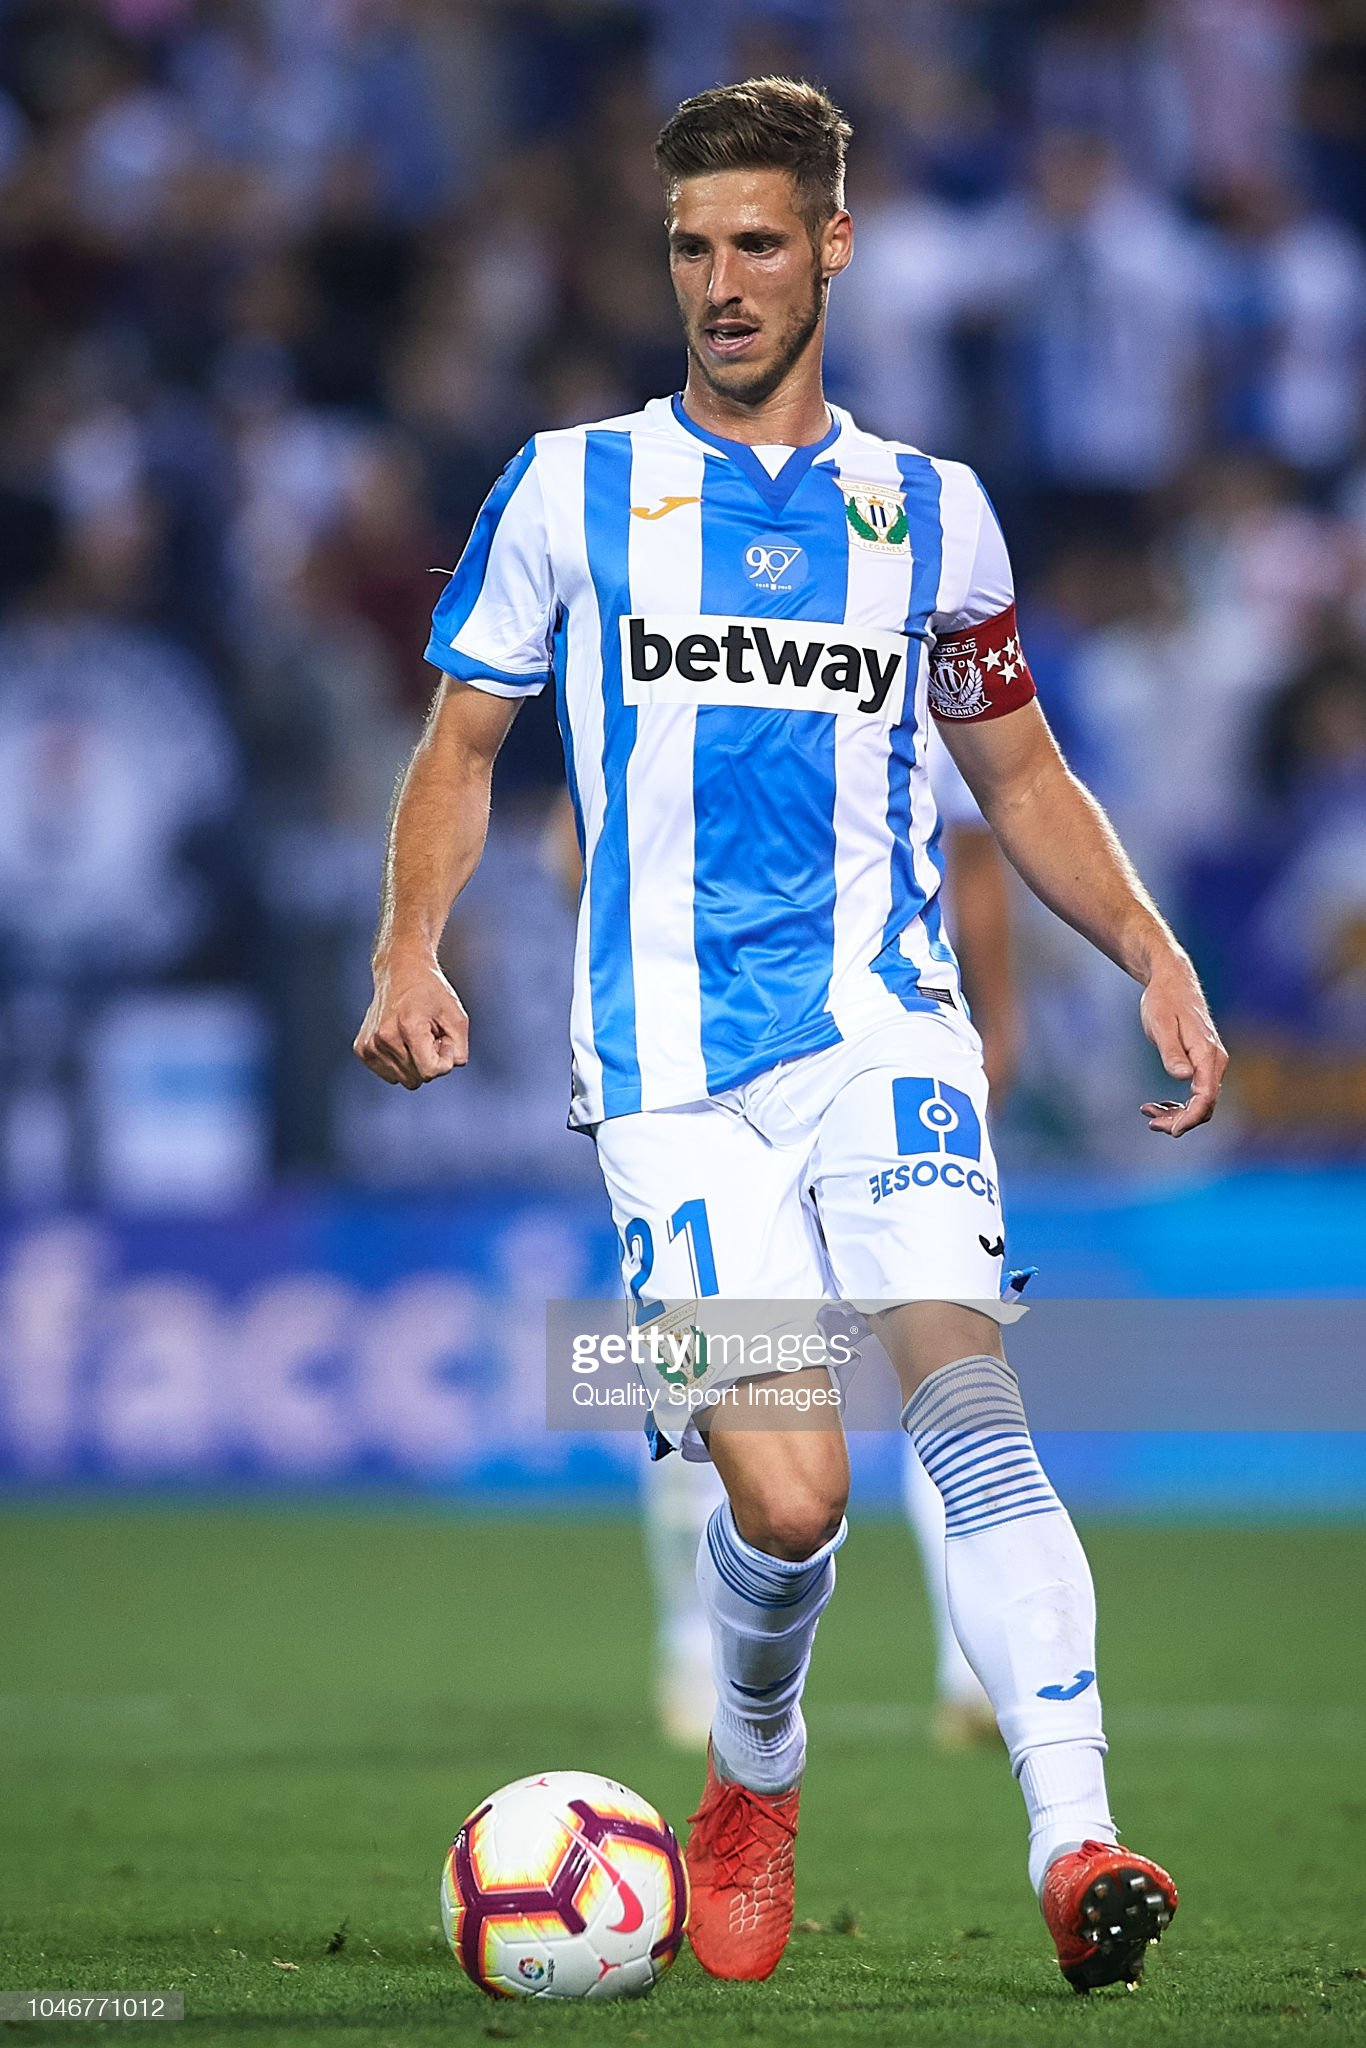 ¿Cuánto mide Rubén Pérez? - Altura  Ruben-perez-of-cd-leganes-in-action-during-the-la-liga-match-between-picture-id1046771012?s=2048x2048